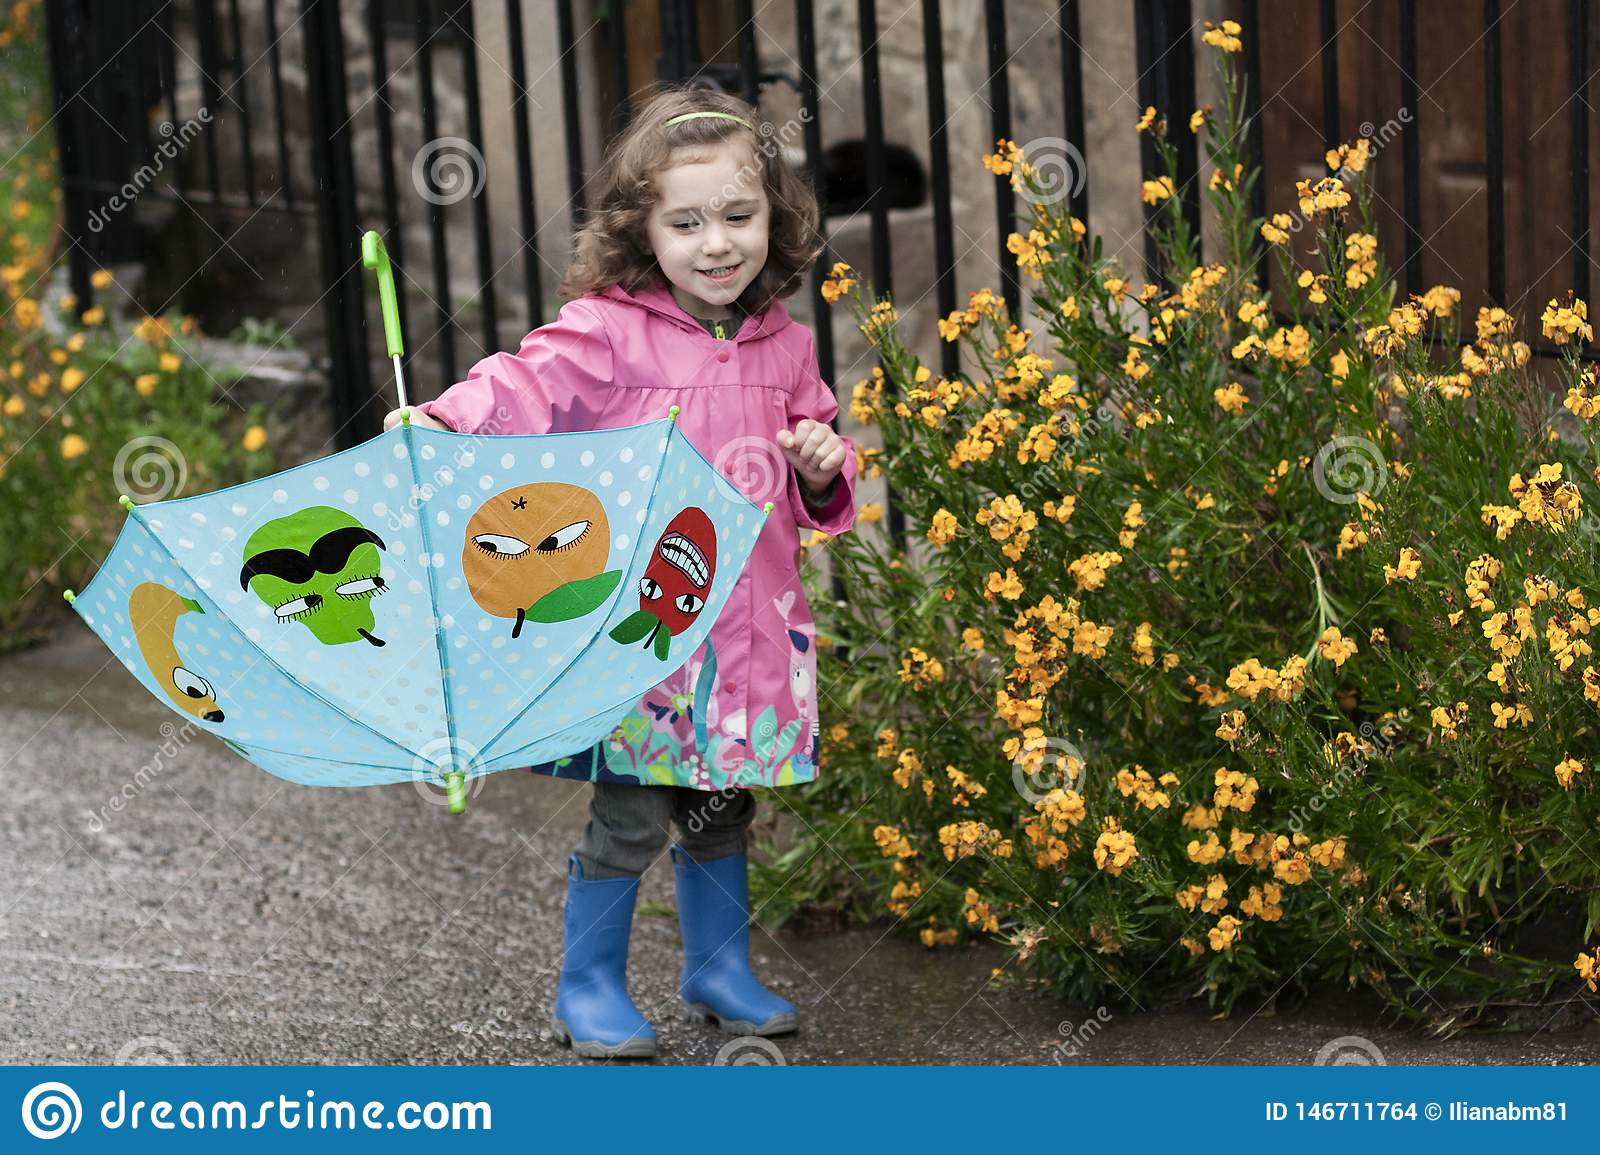 A little girl playing with a colorful umbrella